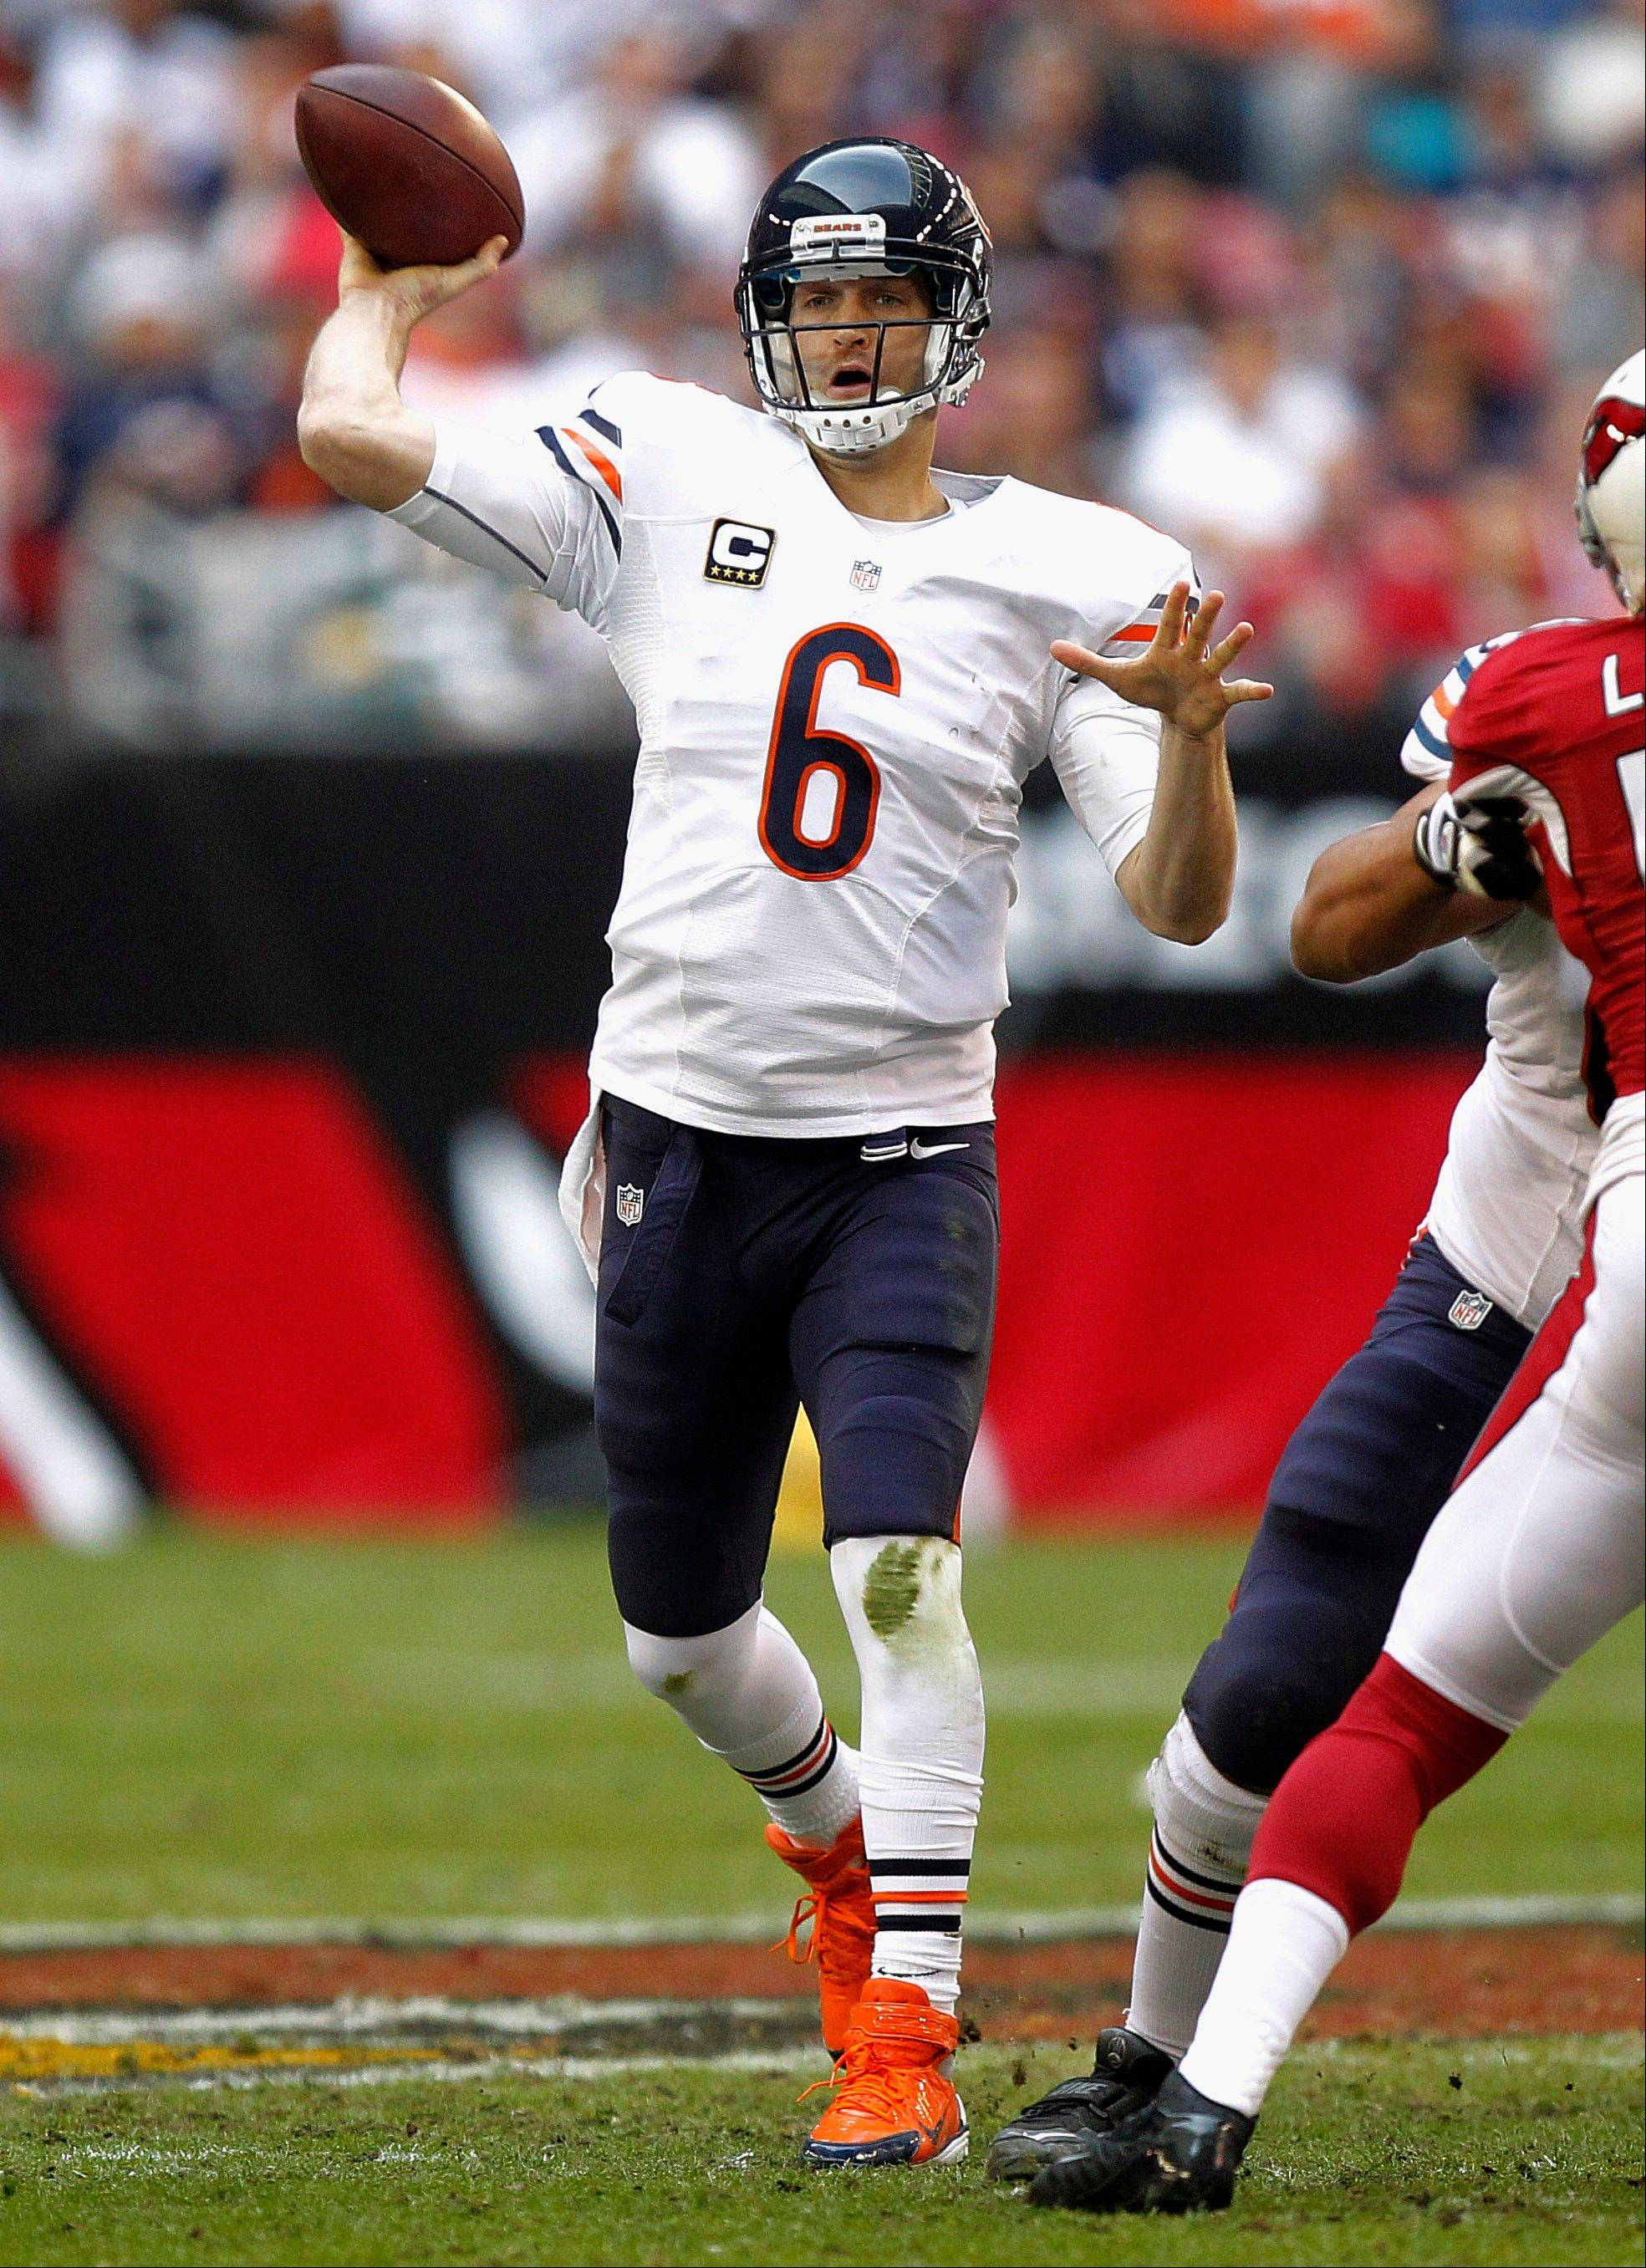 Chicago Bears quarterback Jay Cutler throws against the Arizona Cardinals during the first half.